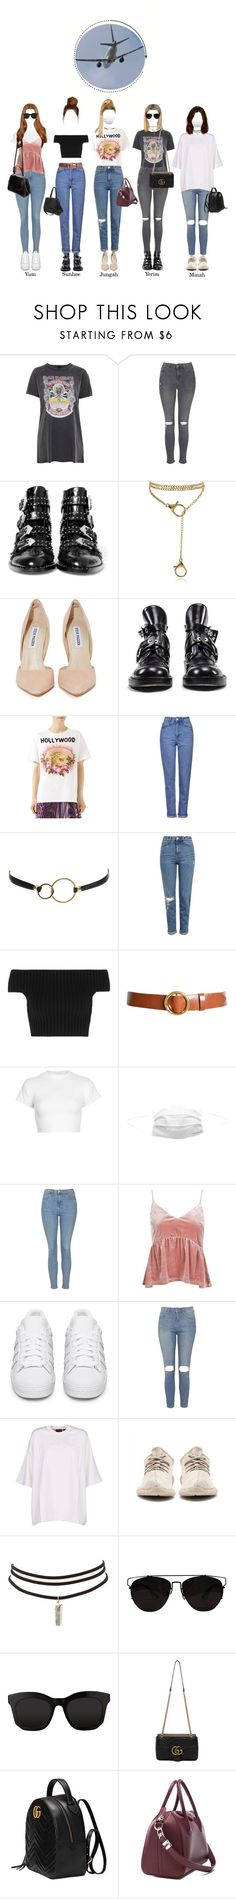 """""""SOLAR @Gimpo Airport OTW to OSAKA"""" by solarofficial ❤ liked on Polyvore featuring Topshop, Givenchy, Steve Madden, Balenciaga, Gucci, Kenneth Jay Lane, Michael Kors, Frame, Motel and adidas Originals"""